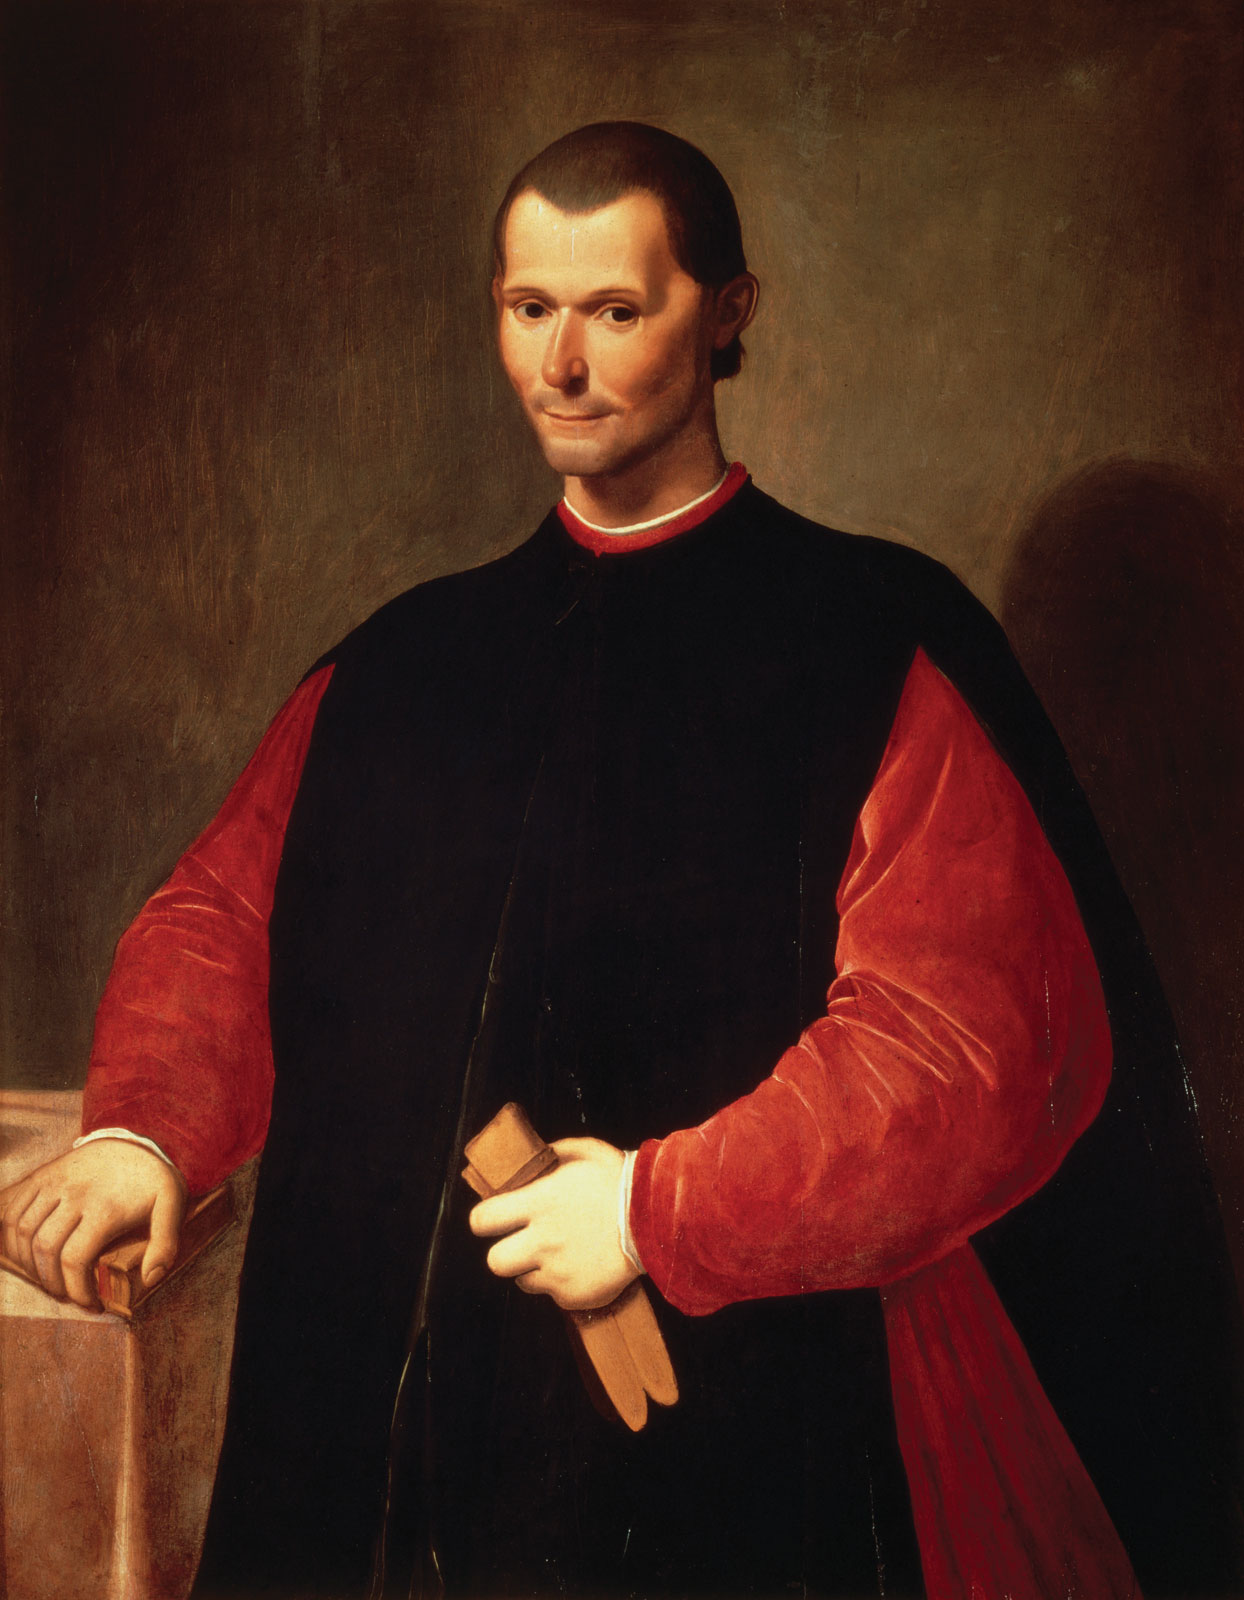 Portrait of Machiavelli by Santi di Tito